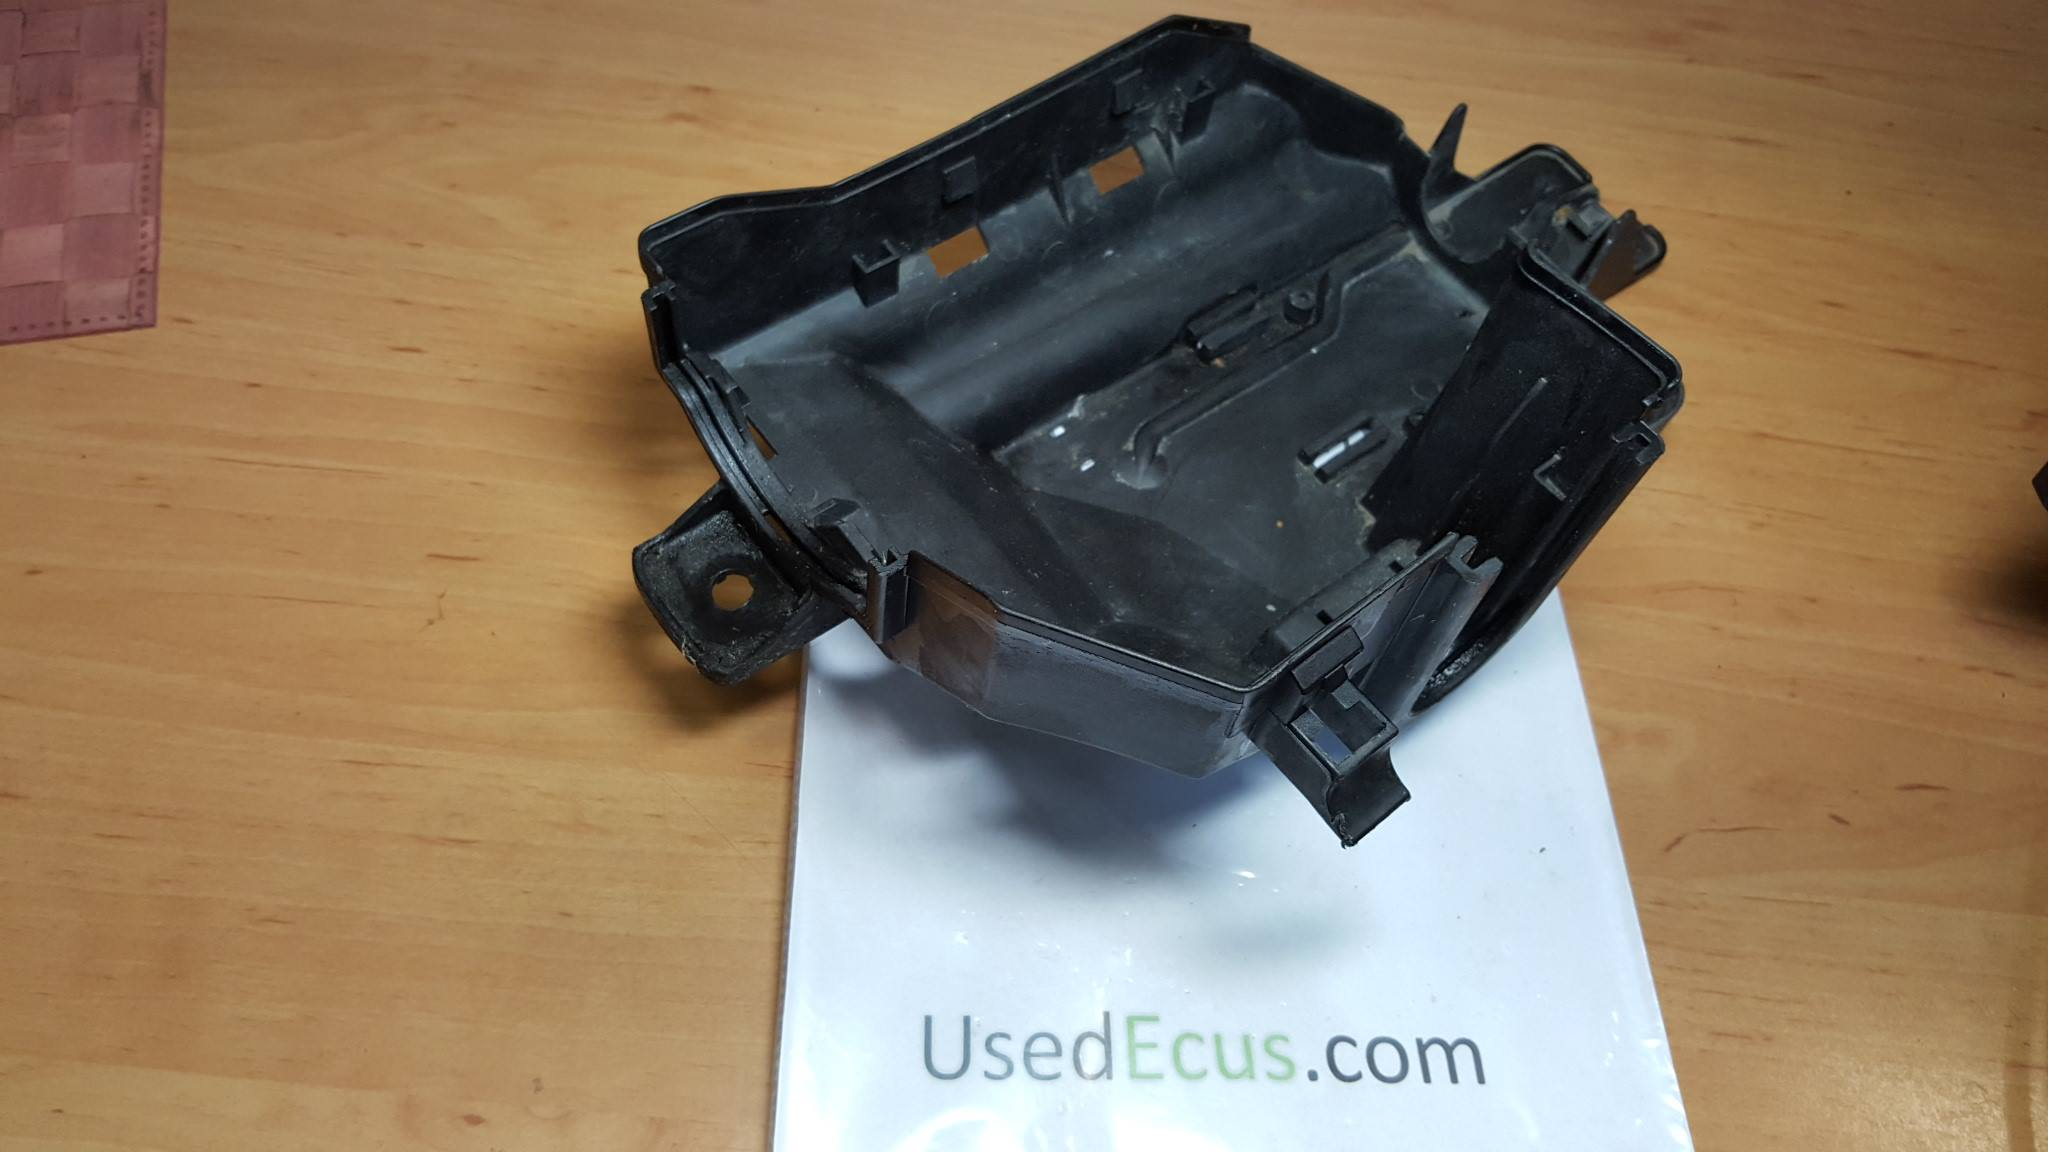 Volvo S60 V70 Front Under Hood Computer Ecu Fuse Box In Article 9452547